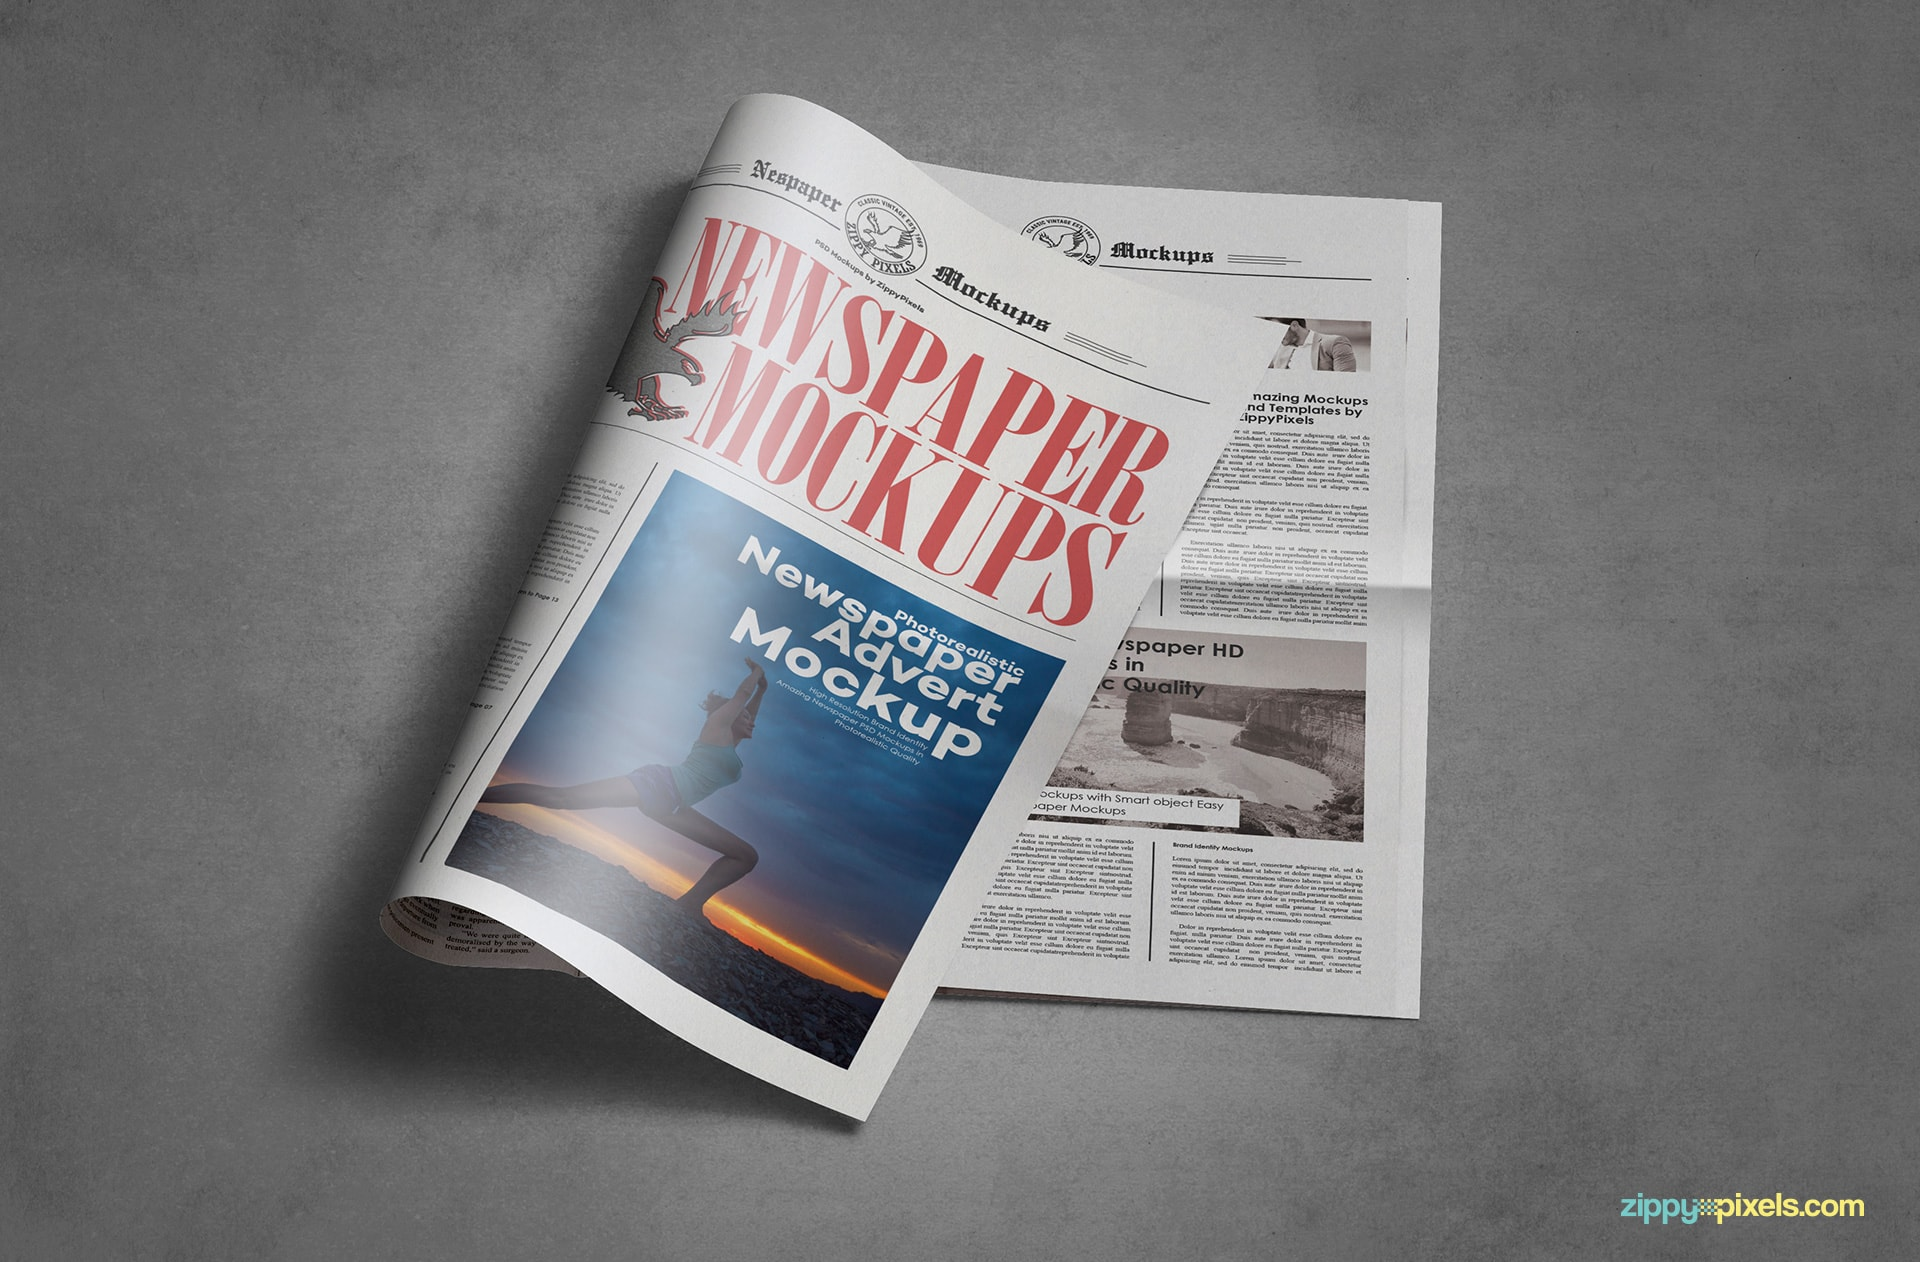 06-psd-newspaper-mock-up-824x542